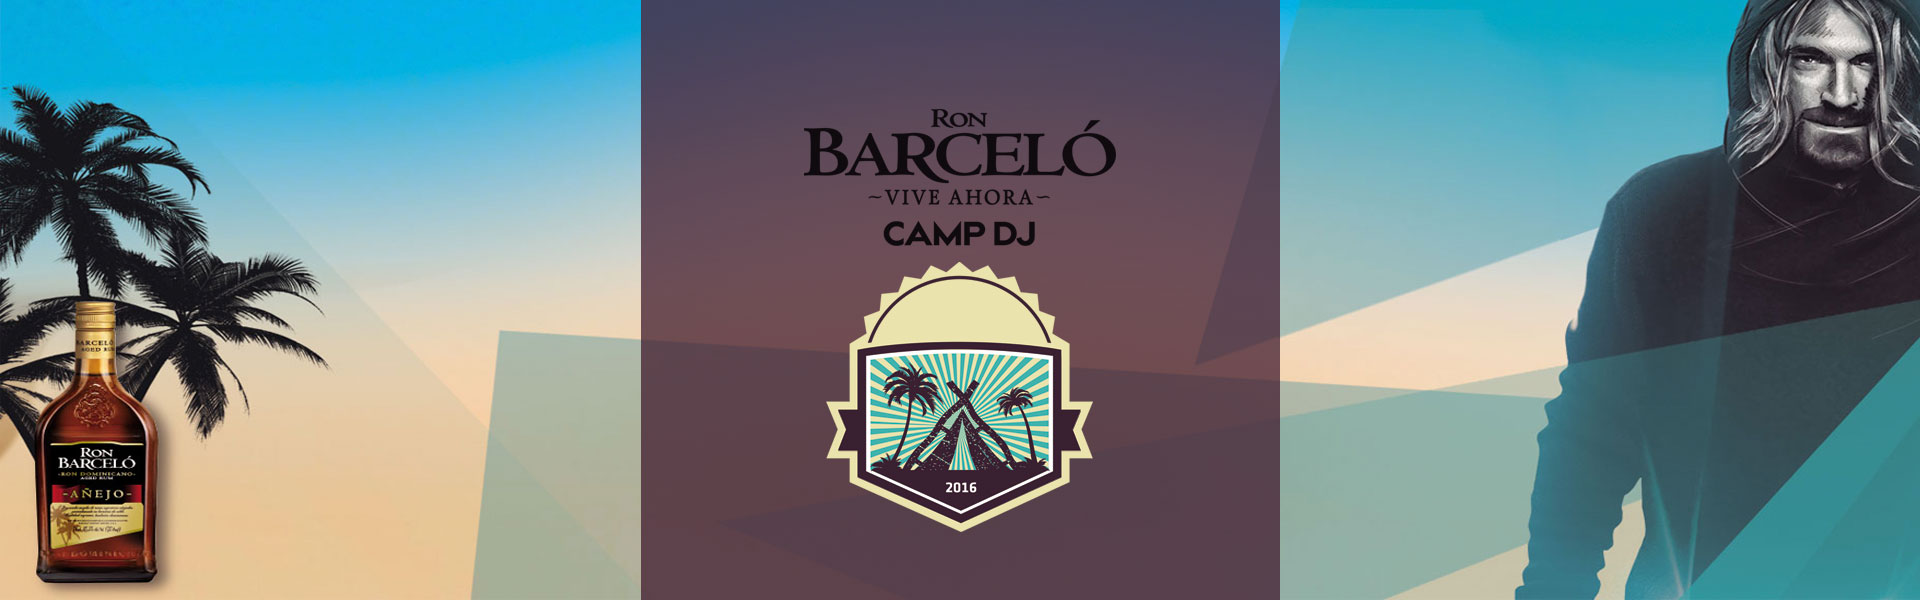 Ron Barceló Camp DJ